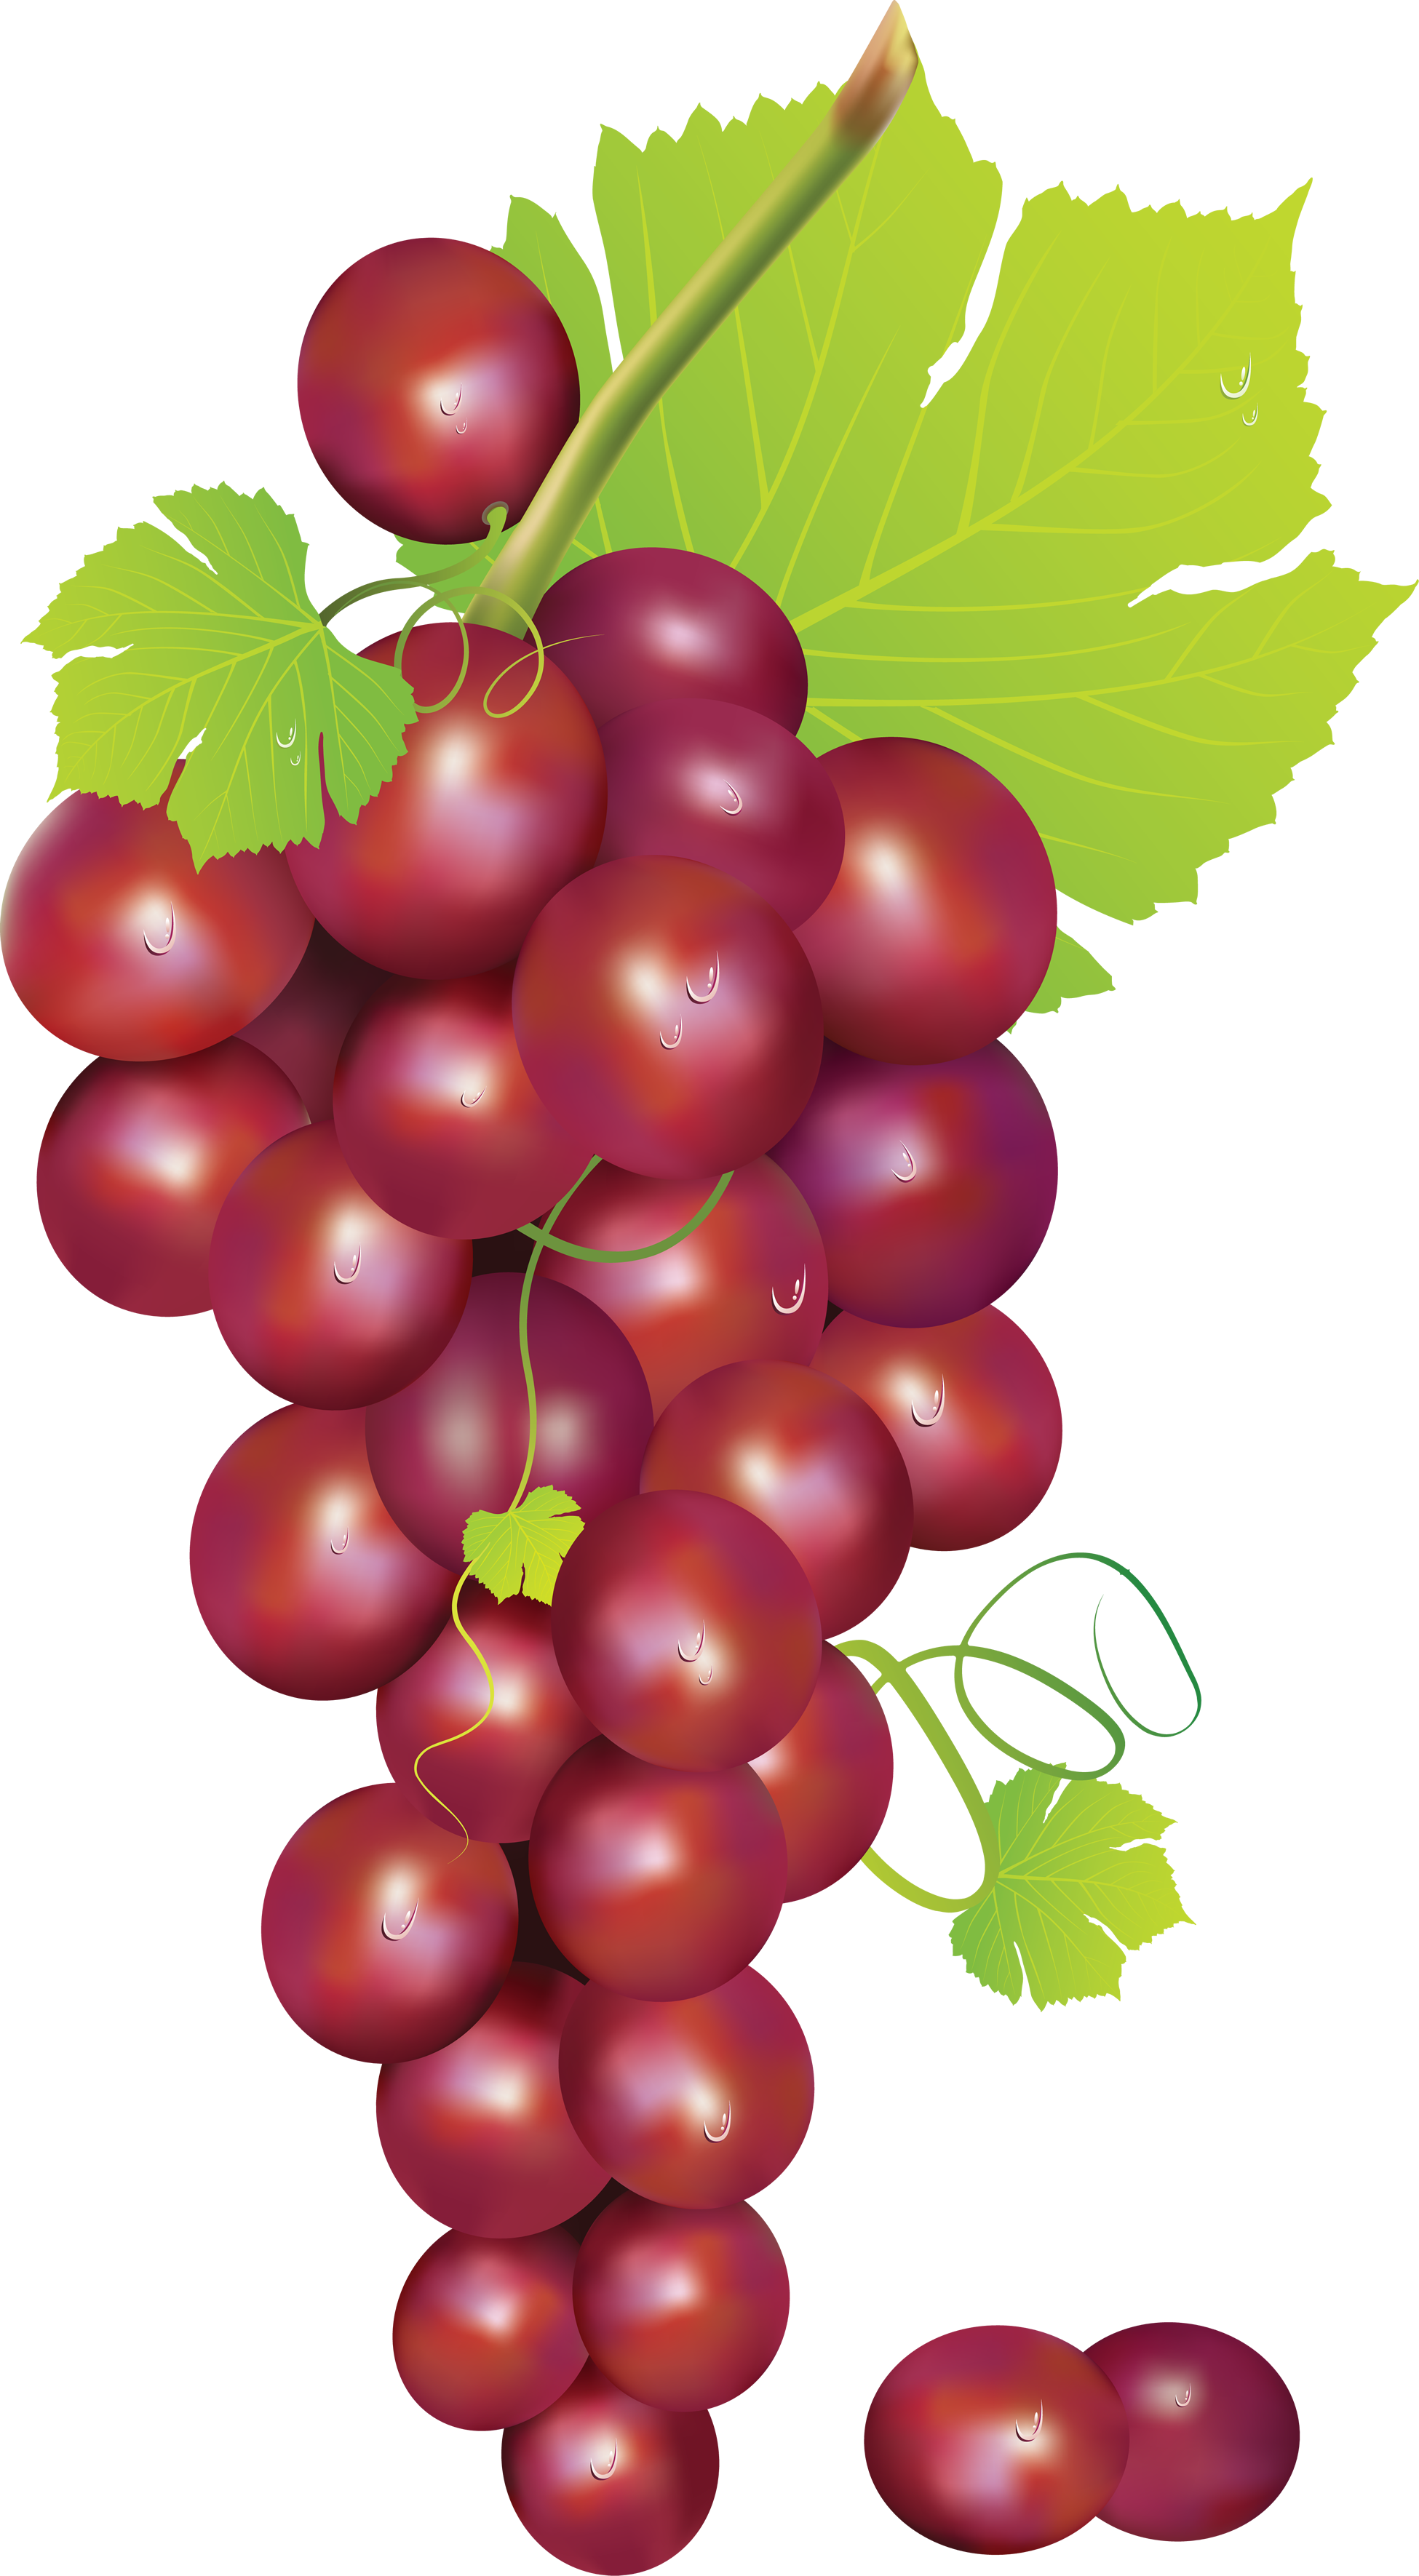 Grapes clipart fruit individual. Ghost green pacman stickers